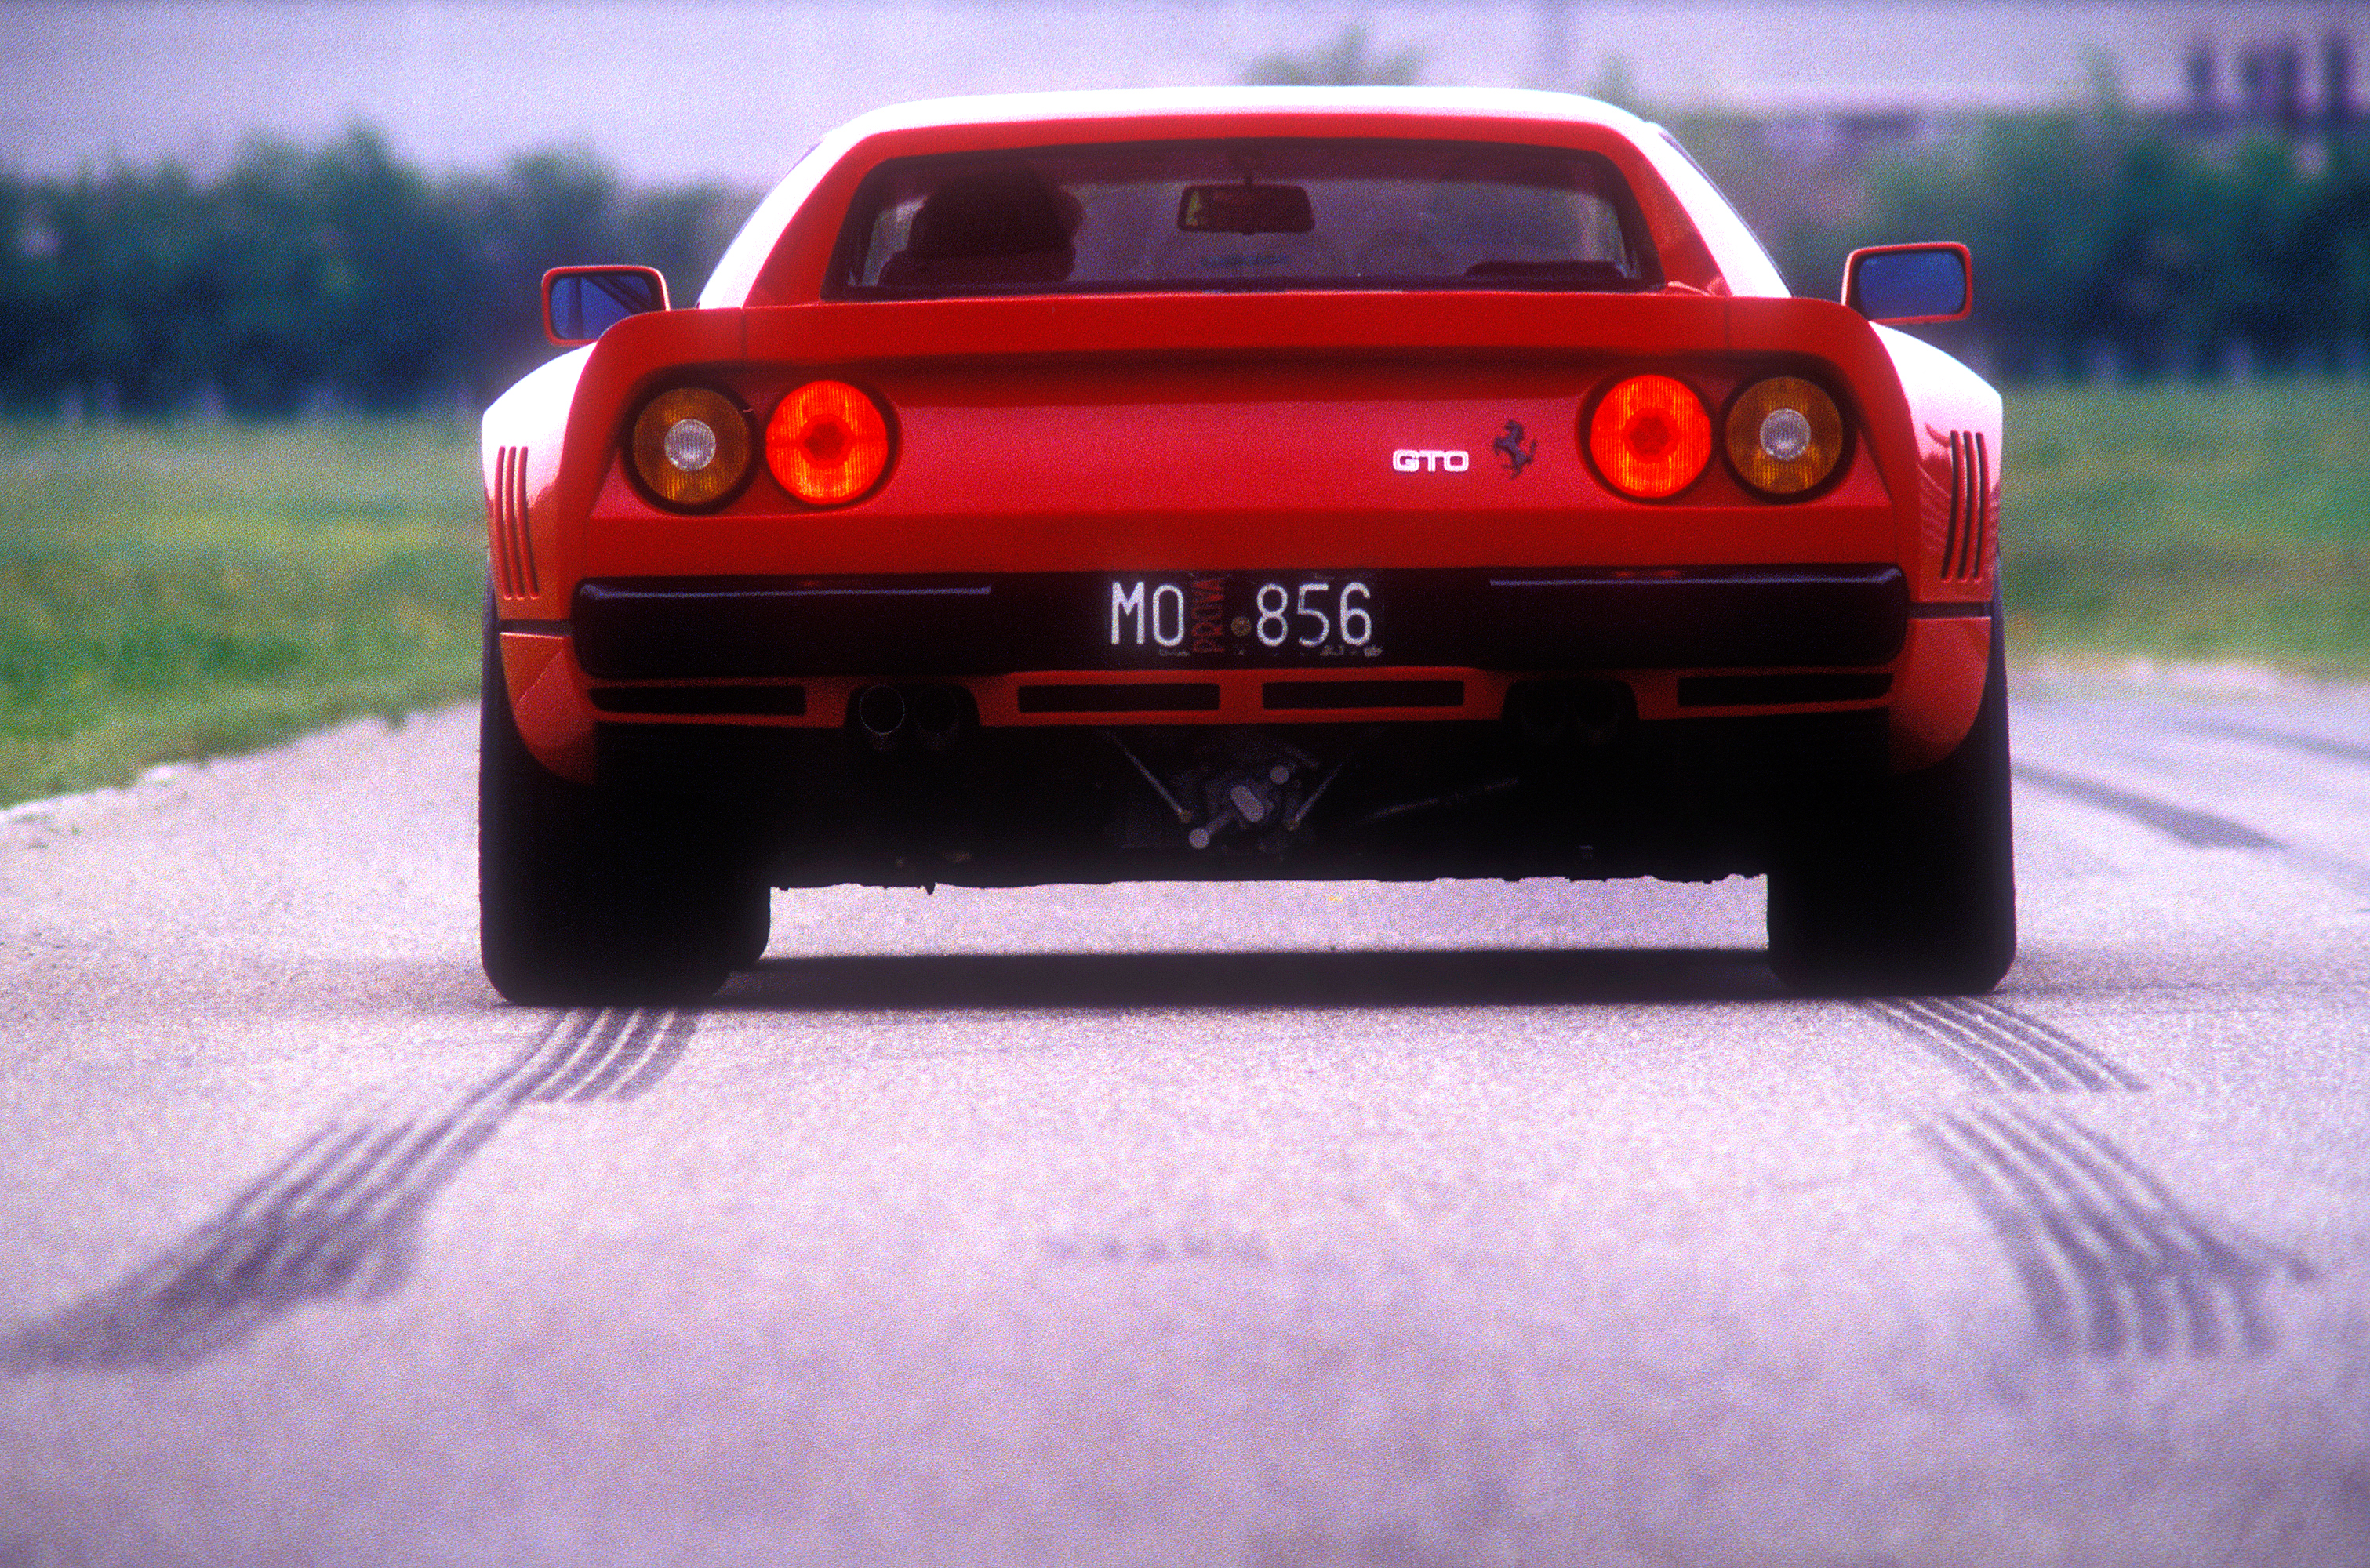 Ferrari 288 GTO on test track @ Fiorano. 1984